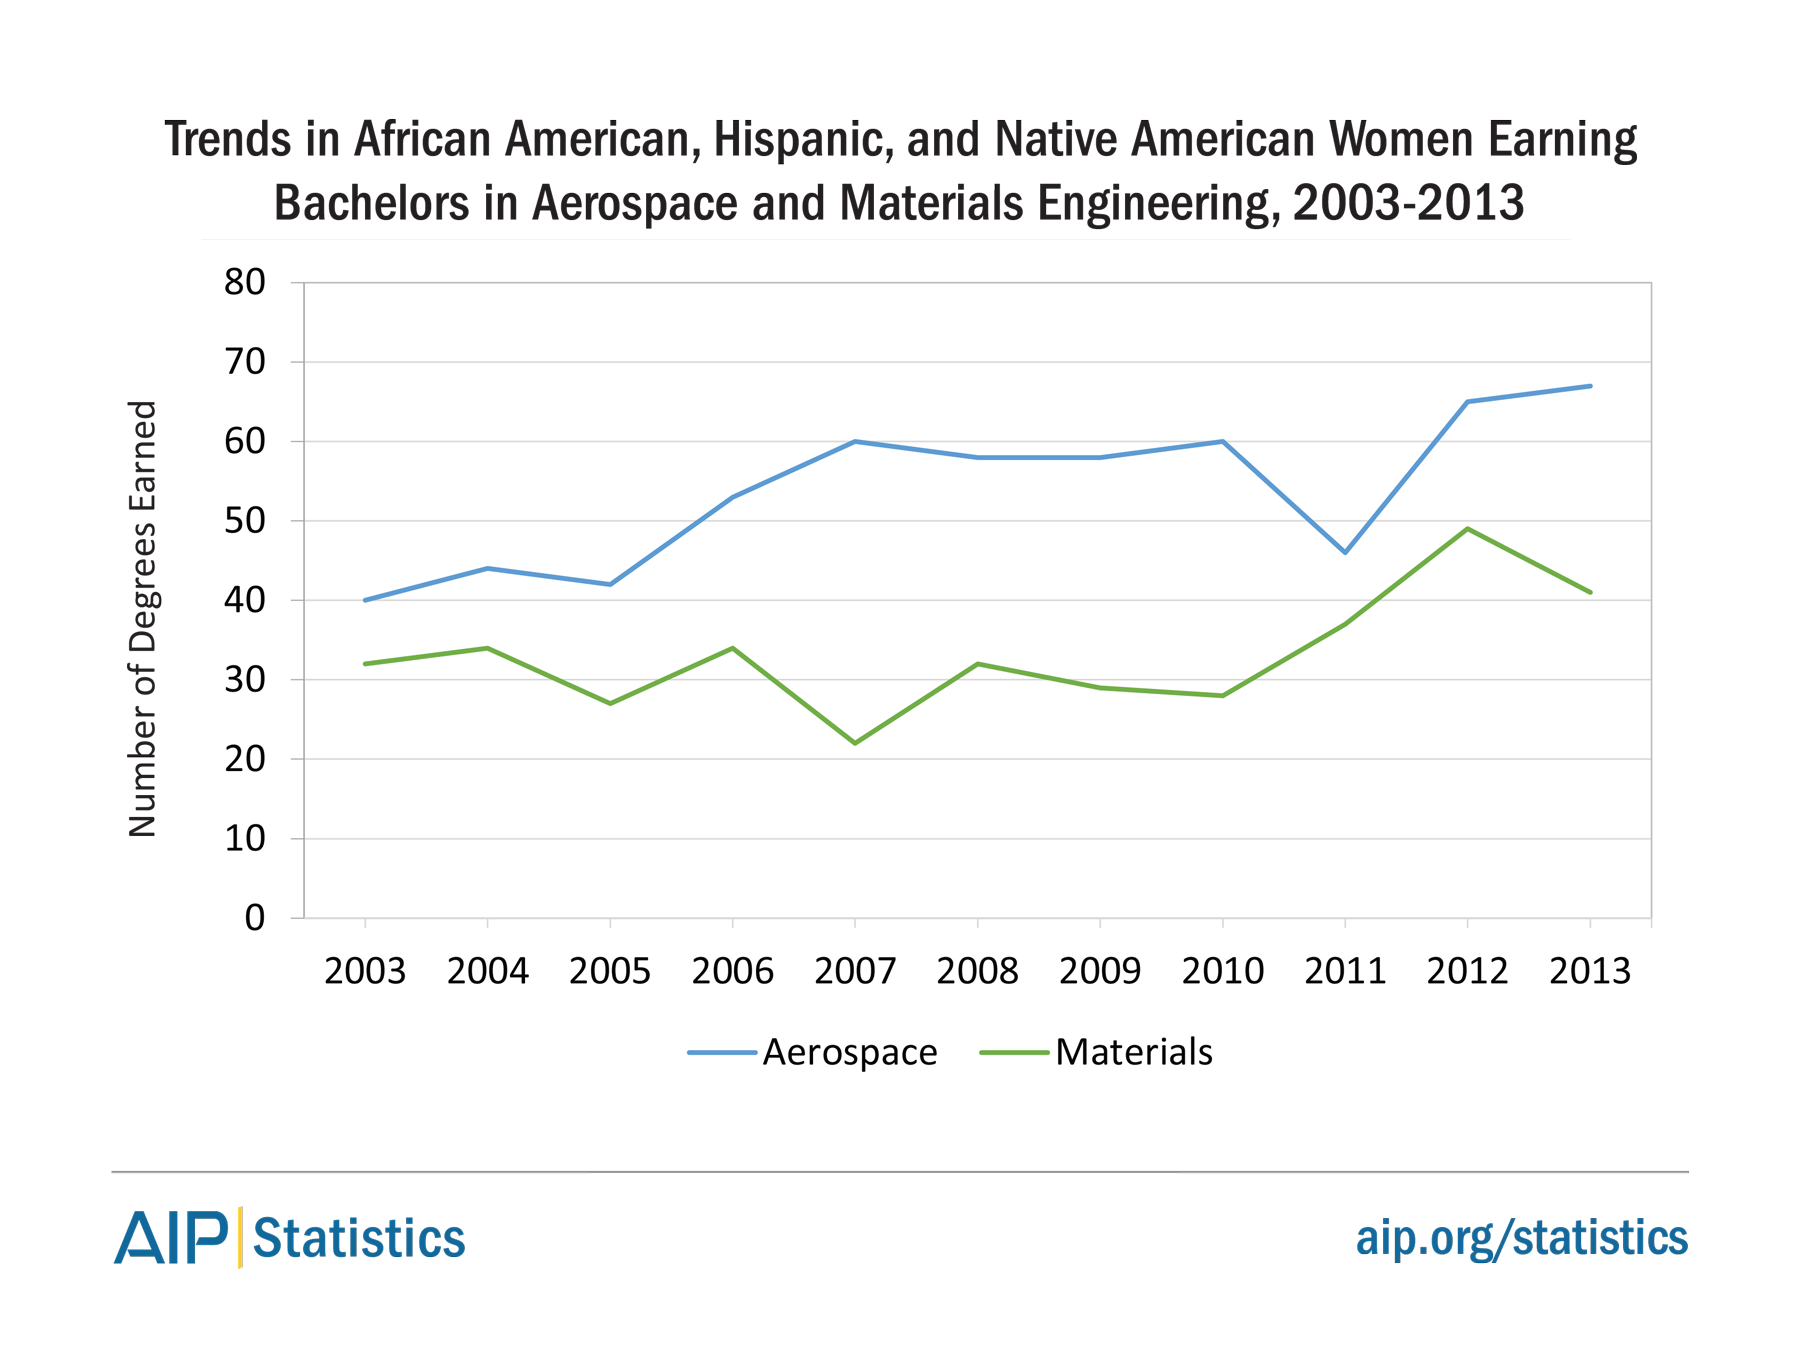 Trends in African American, Hispanic, and Native American Women Earning Bachelors in Aerospace and Materials Engineering, 2003-2013